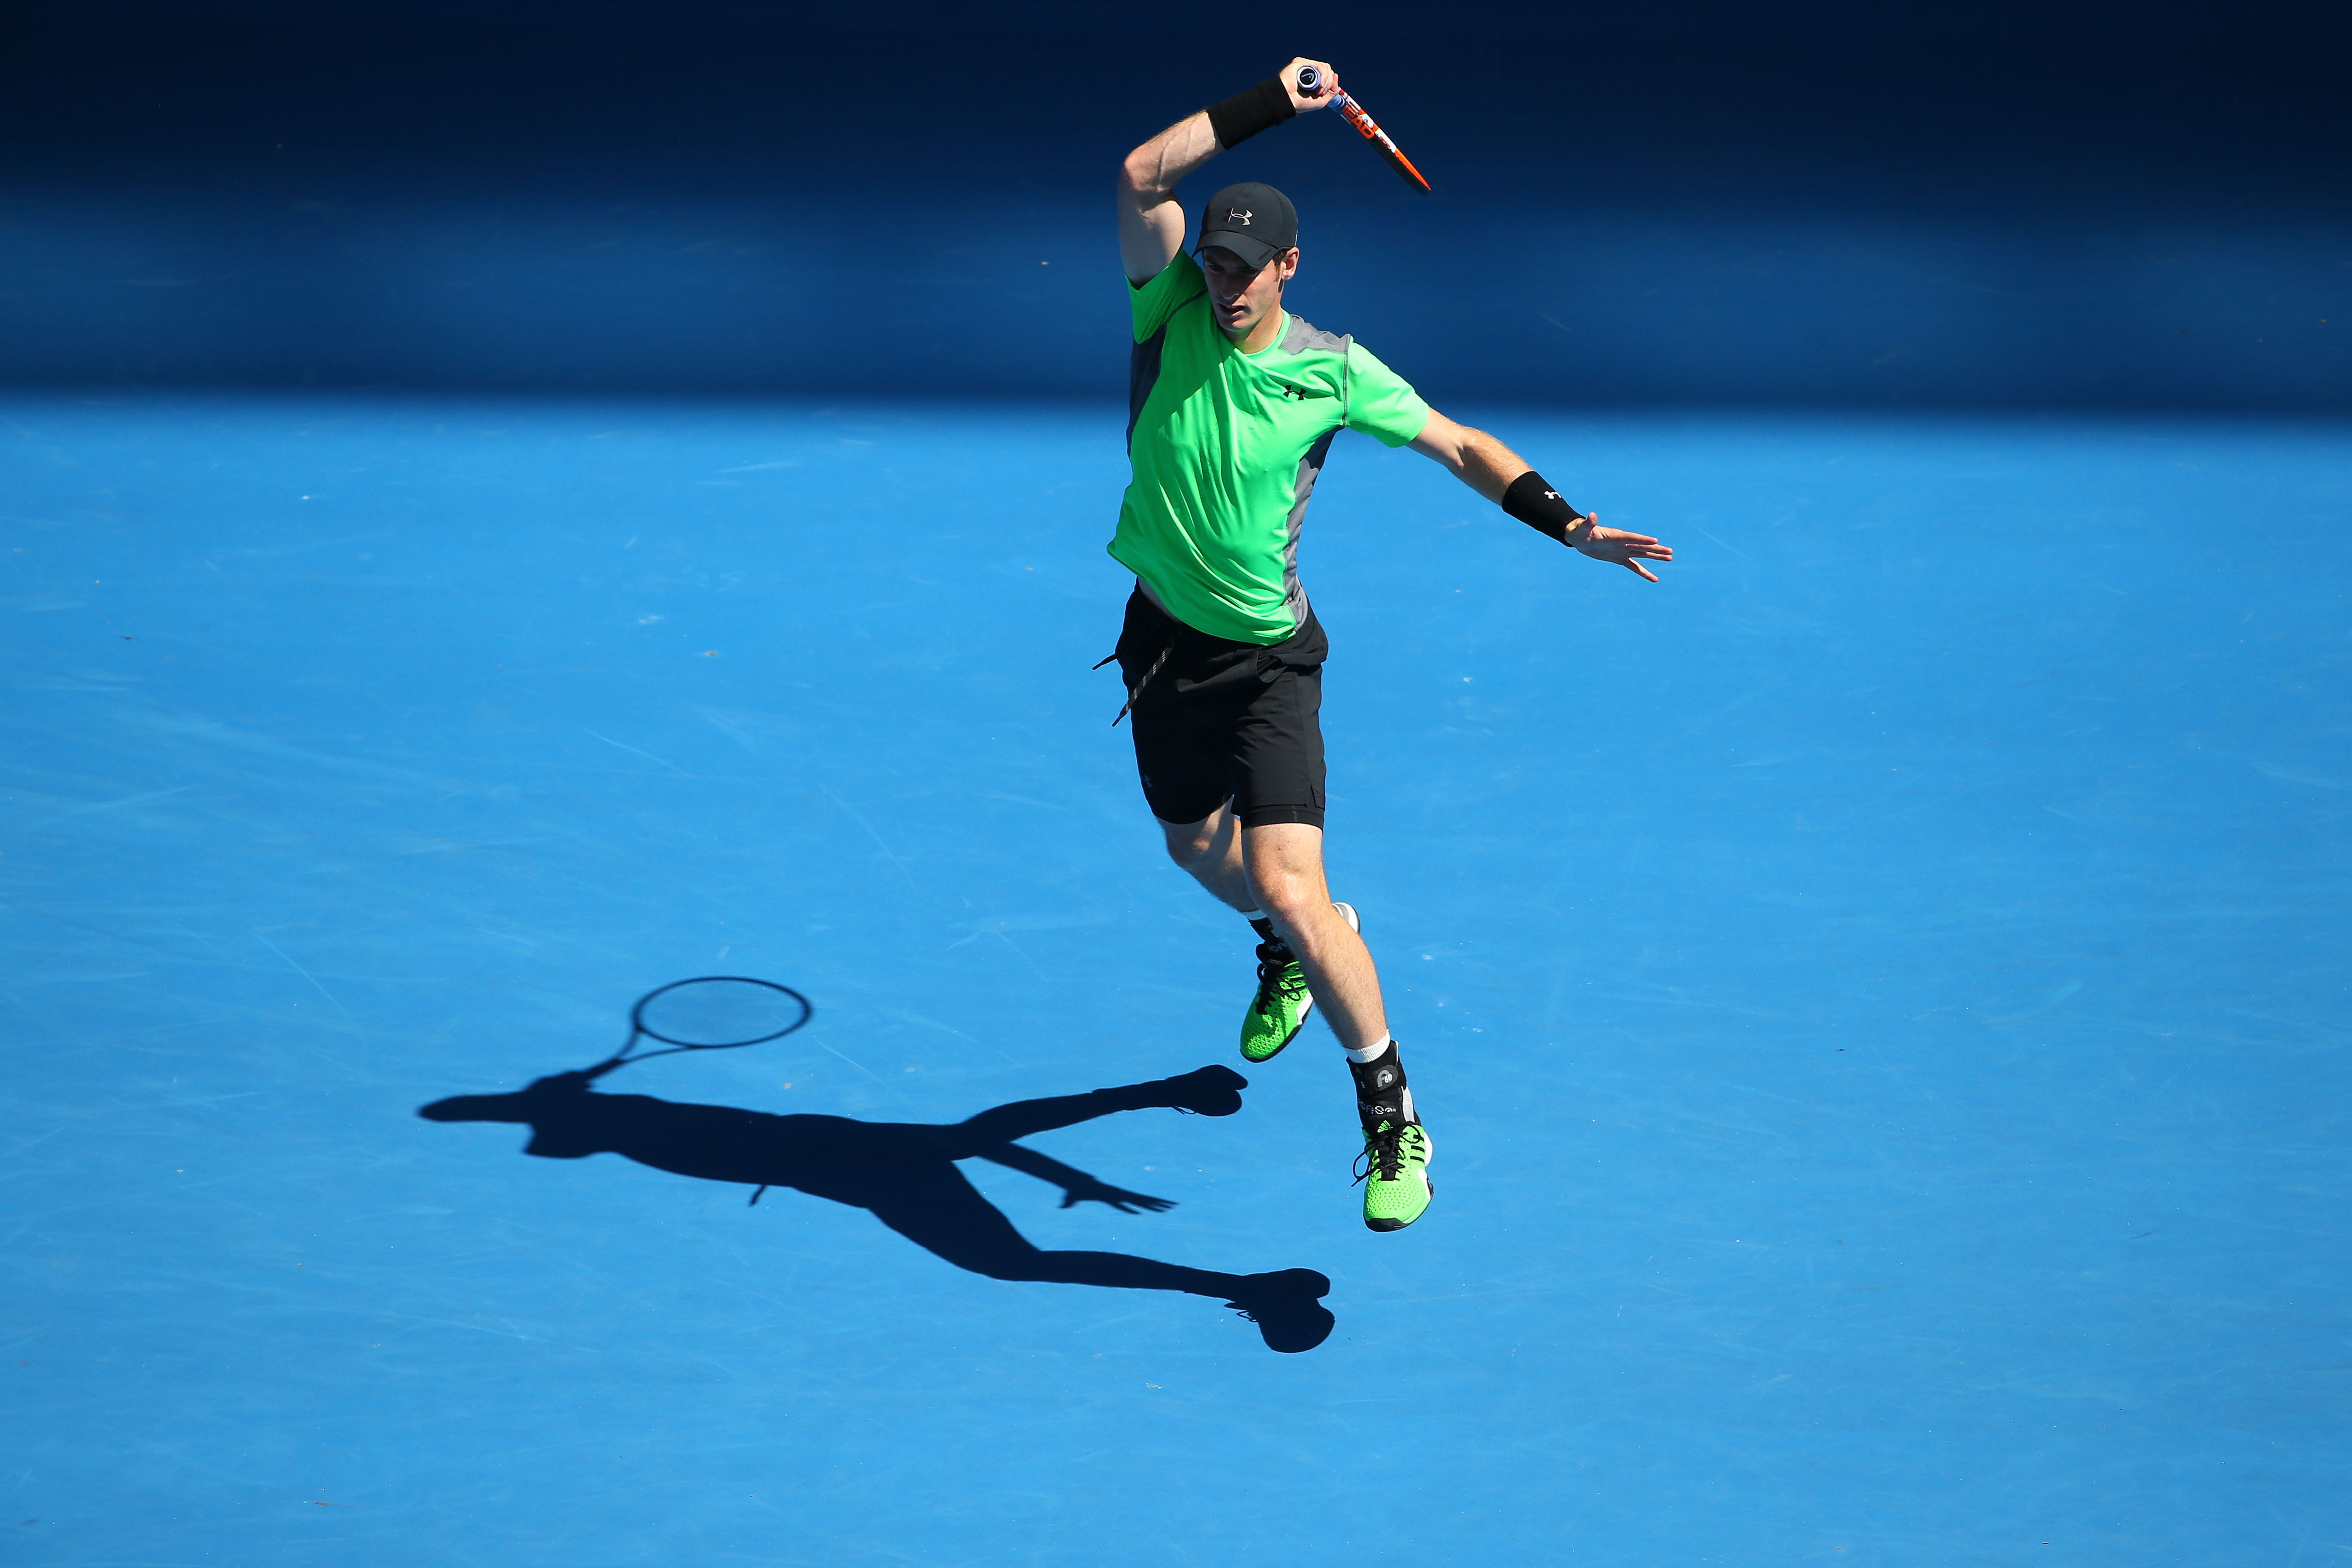 Murray wears the black and bright green combo well, and it's a bit more subdued than some of the other neon colors.